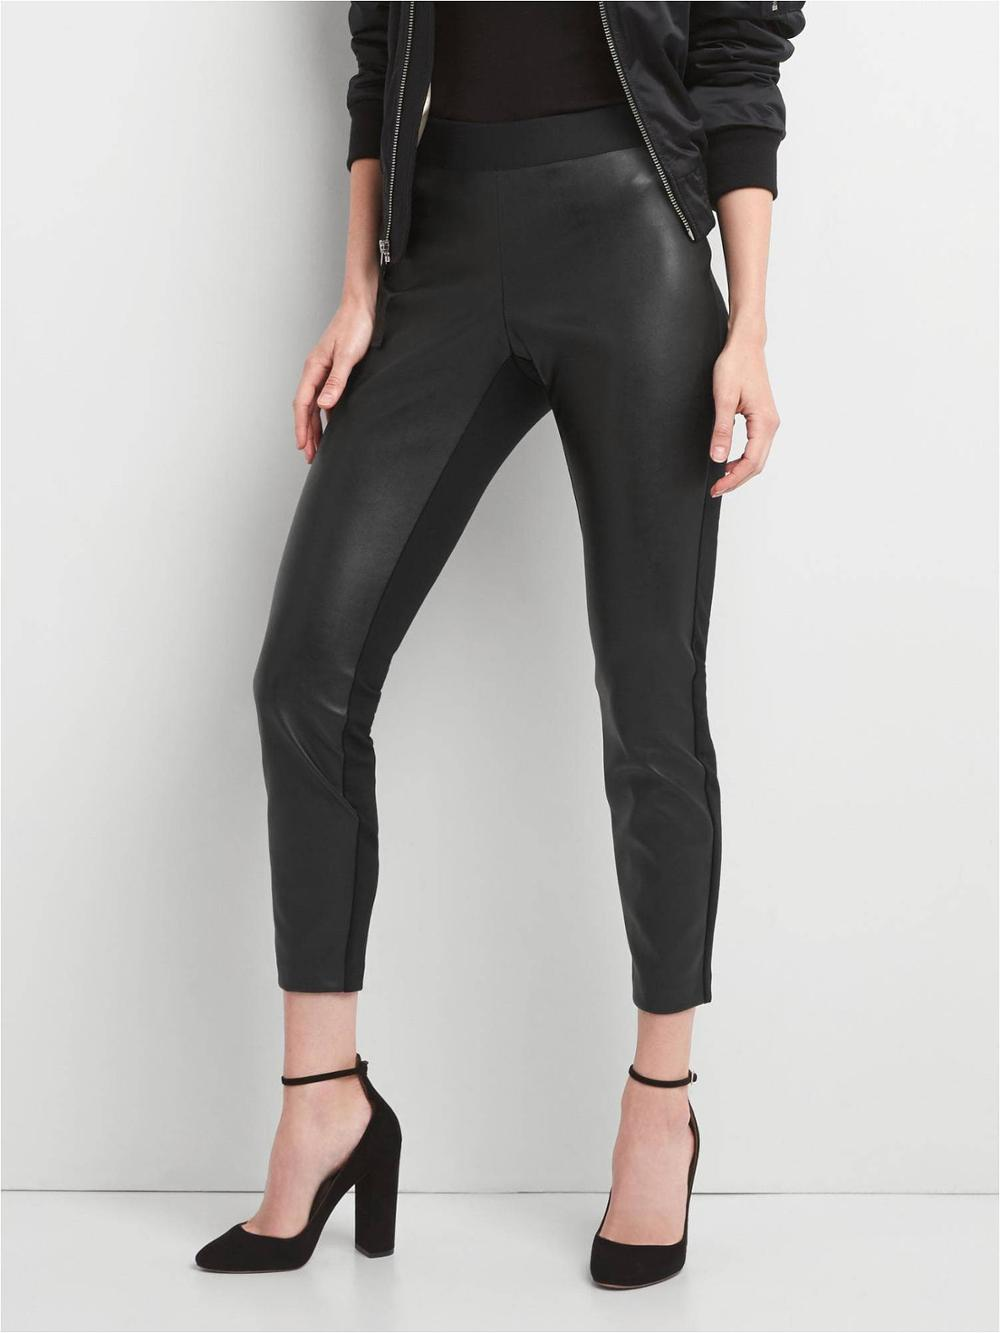 P18E021BW Hot sale fashion classic sexy tight leather pants for women all seasons leather front leggings custom